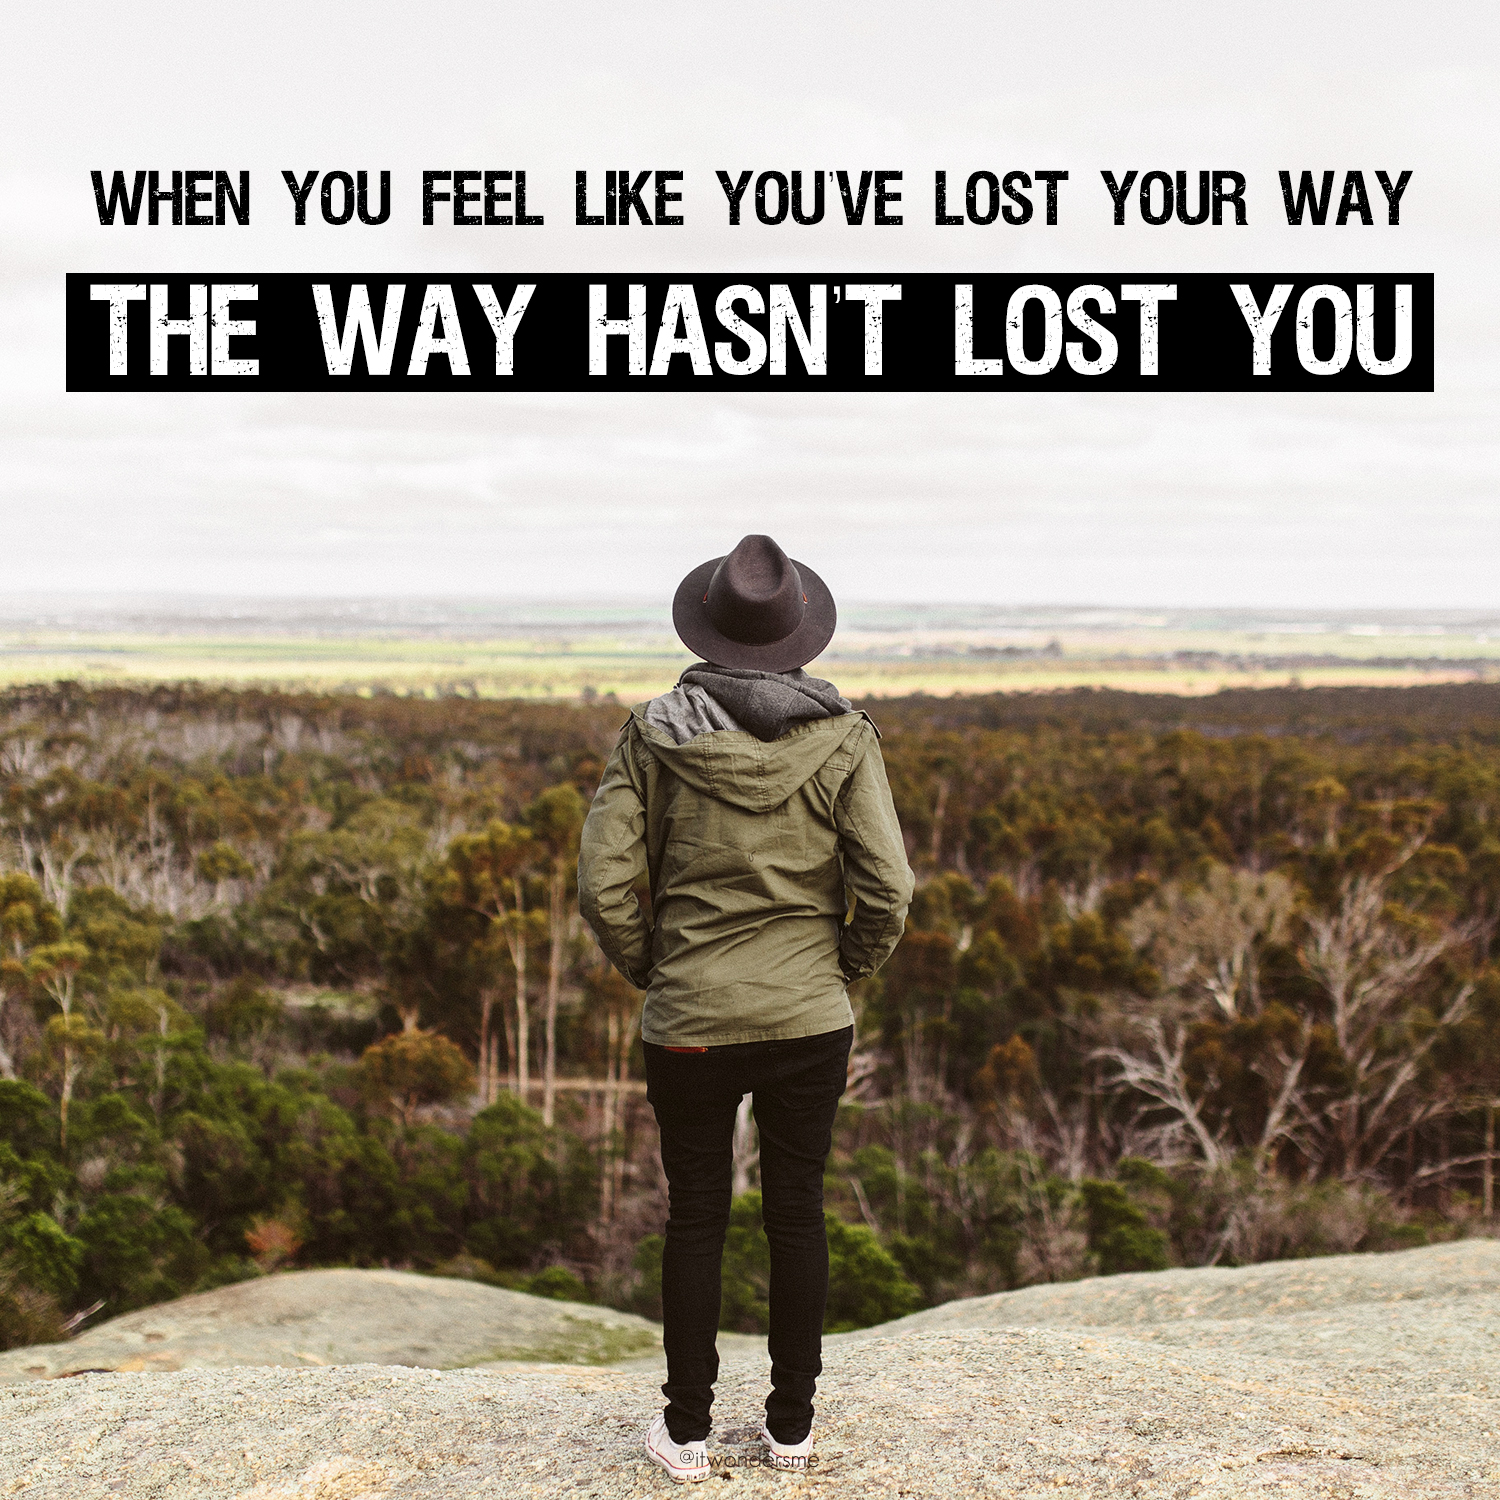 The way hasn't lost you